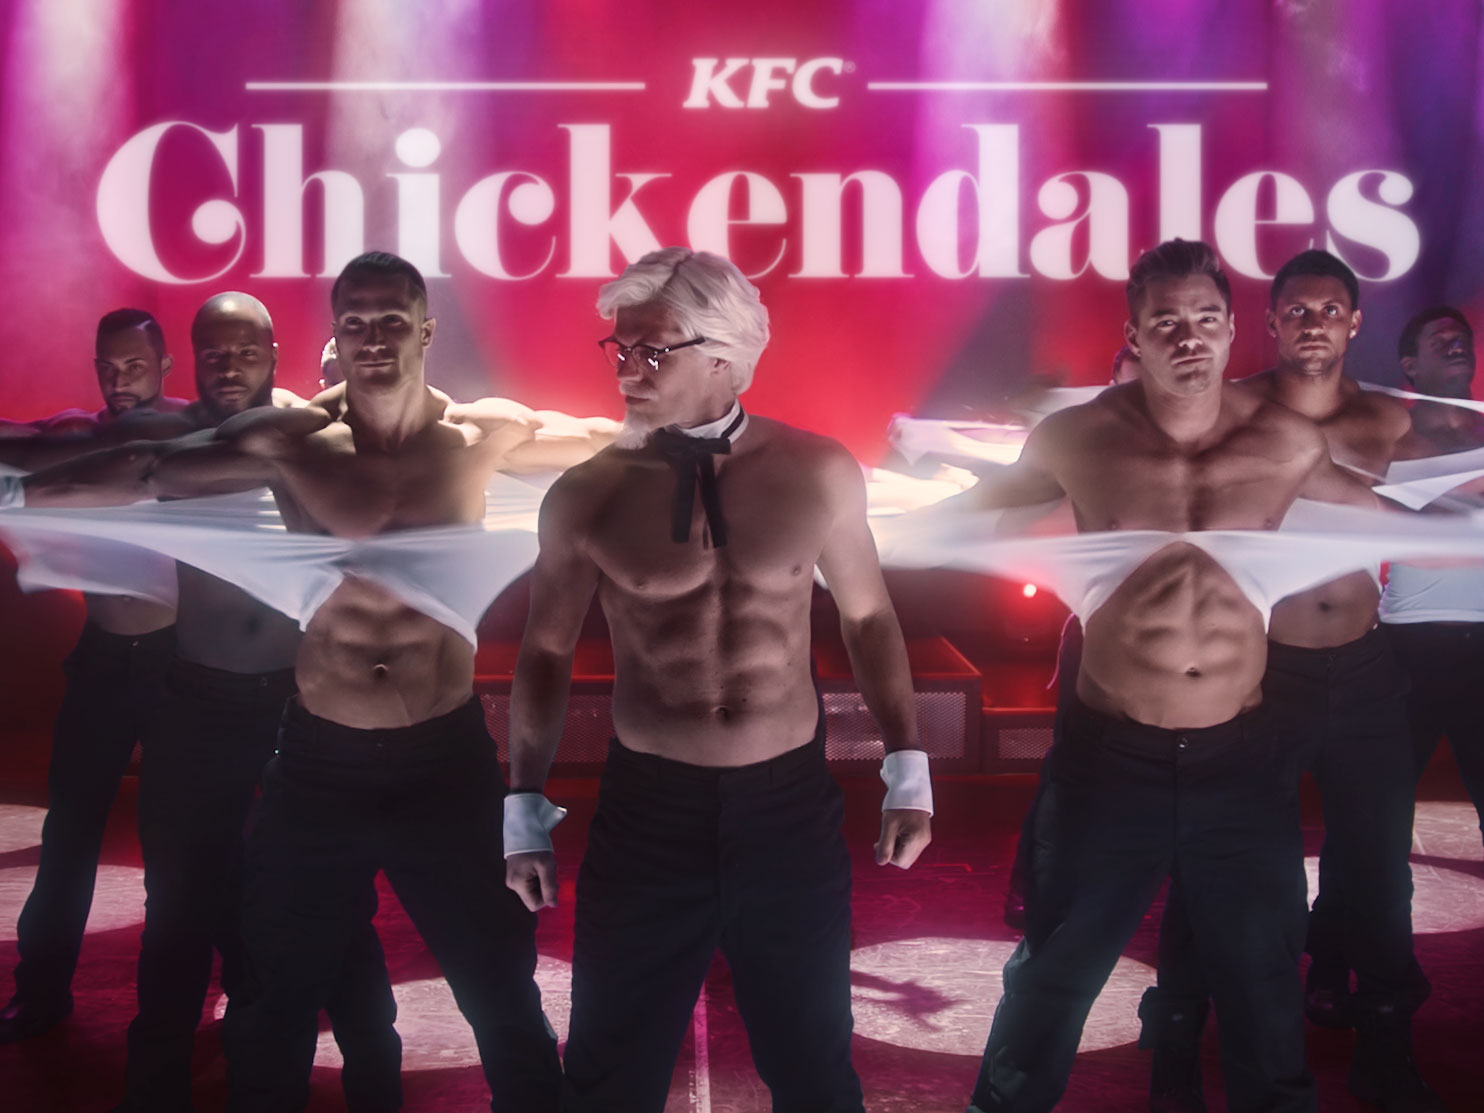 kfc-chickendales-FT-BLOG0419.jpg